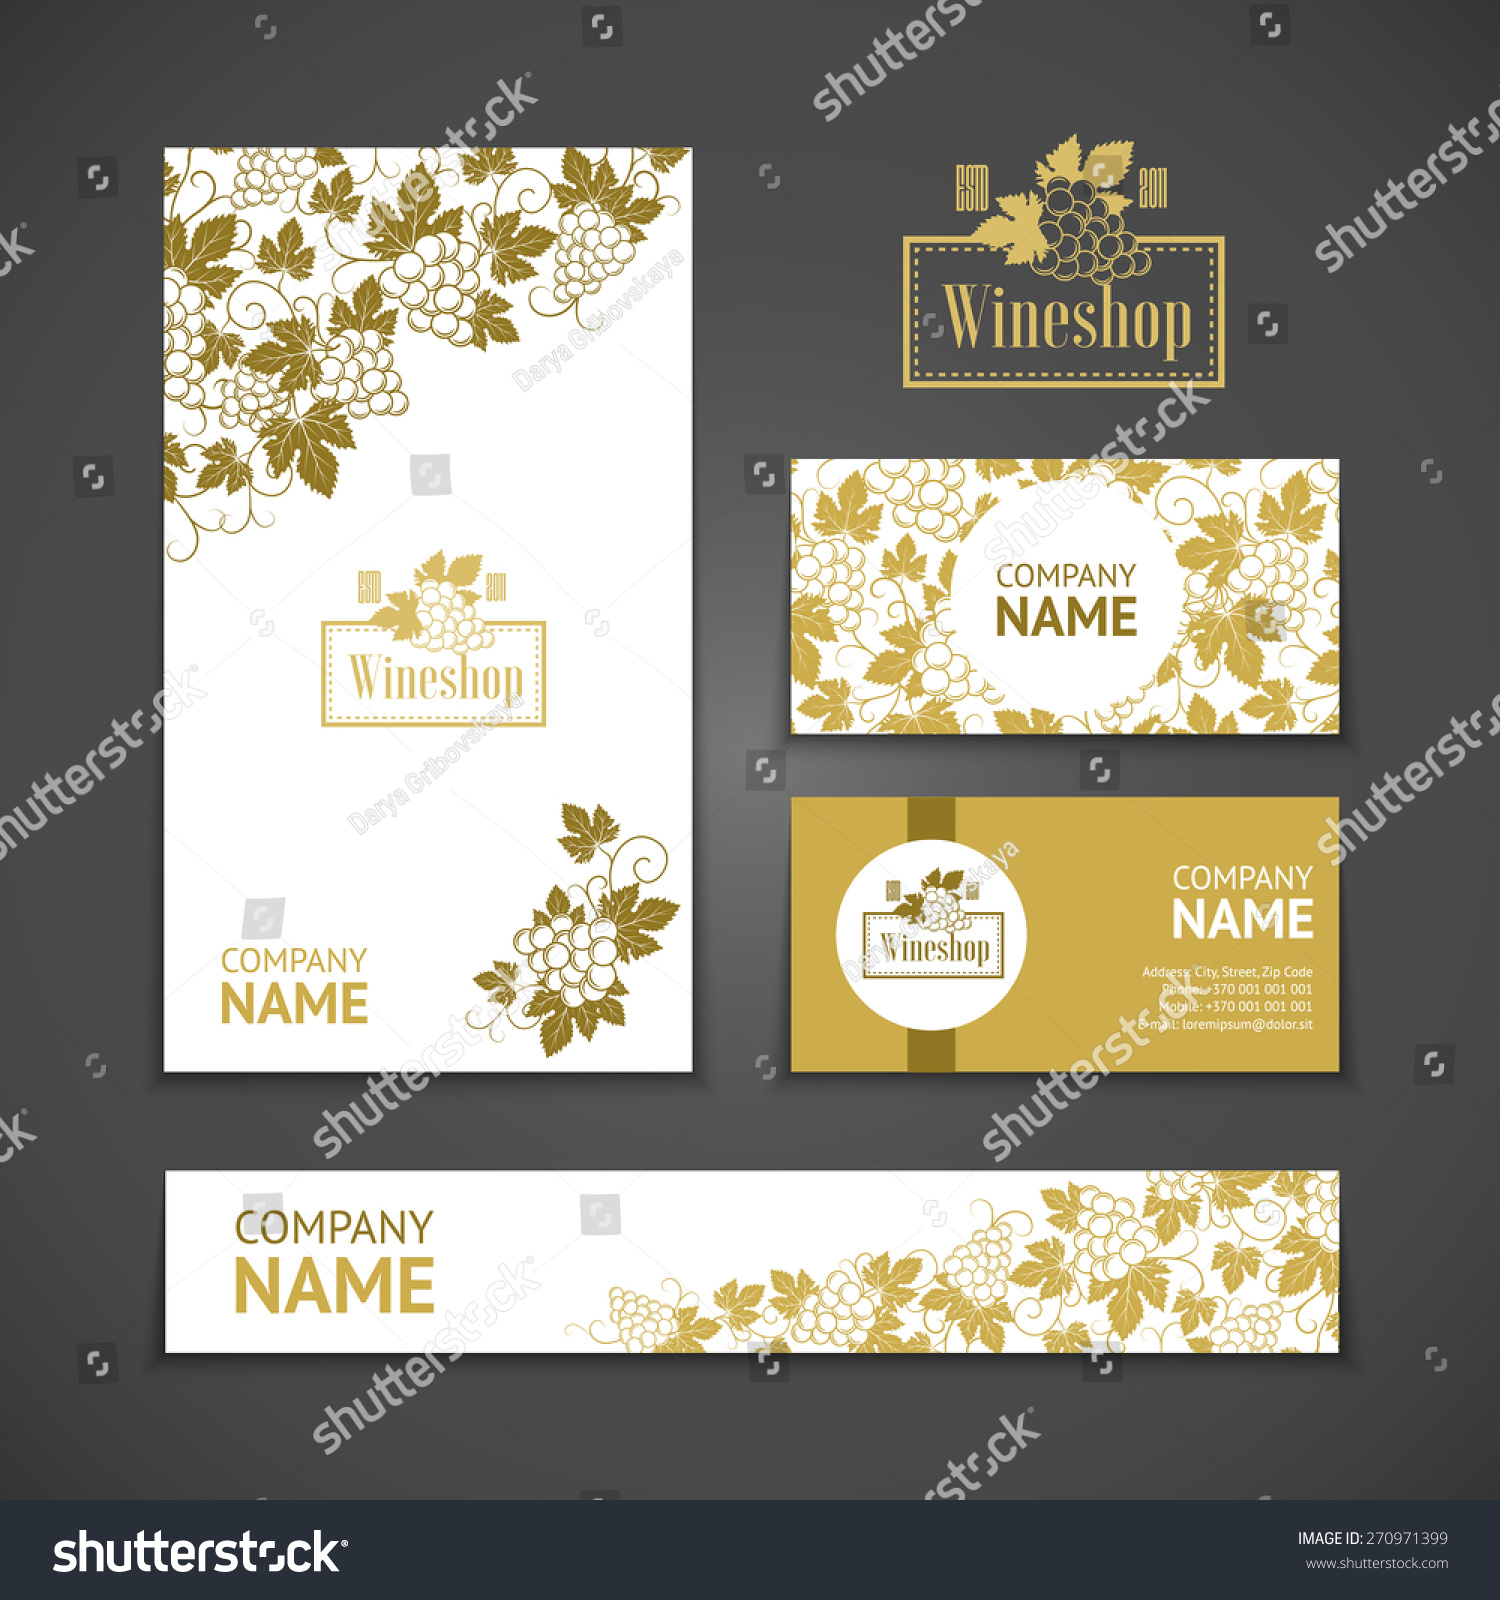 Wine Business Cards Images - Free Business Cards